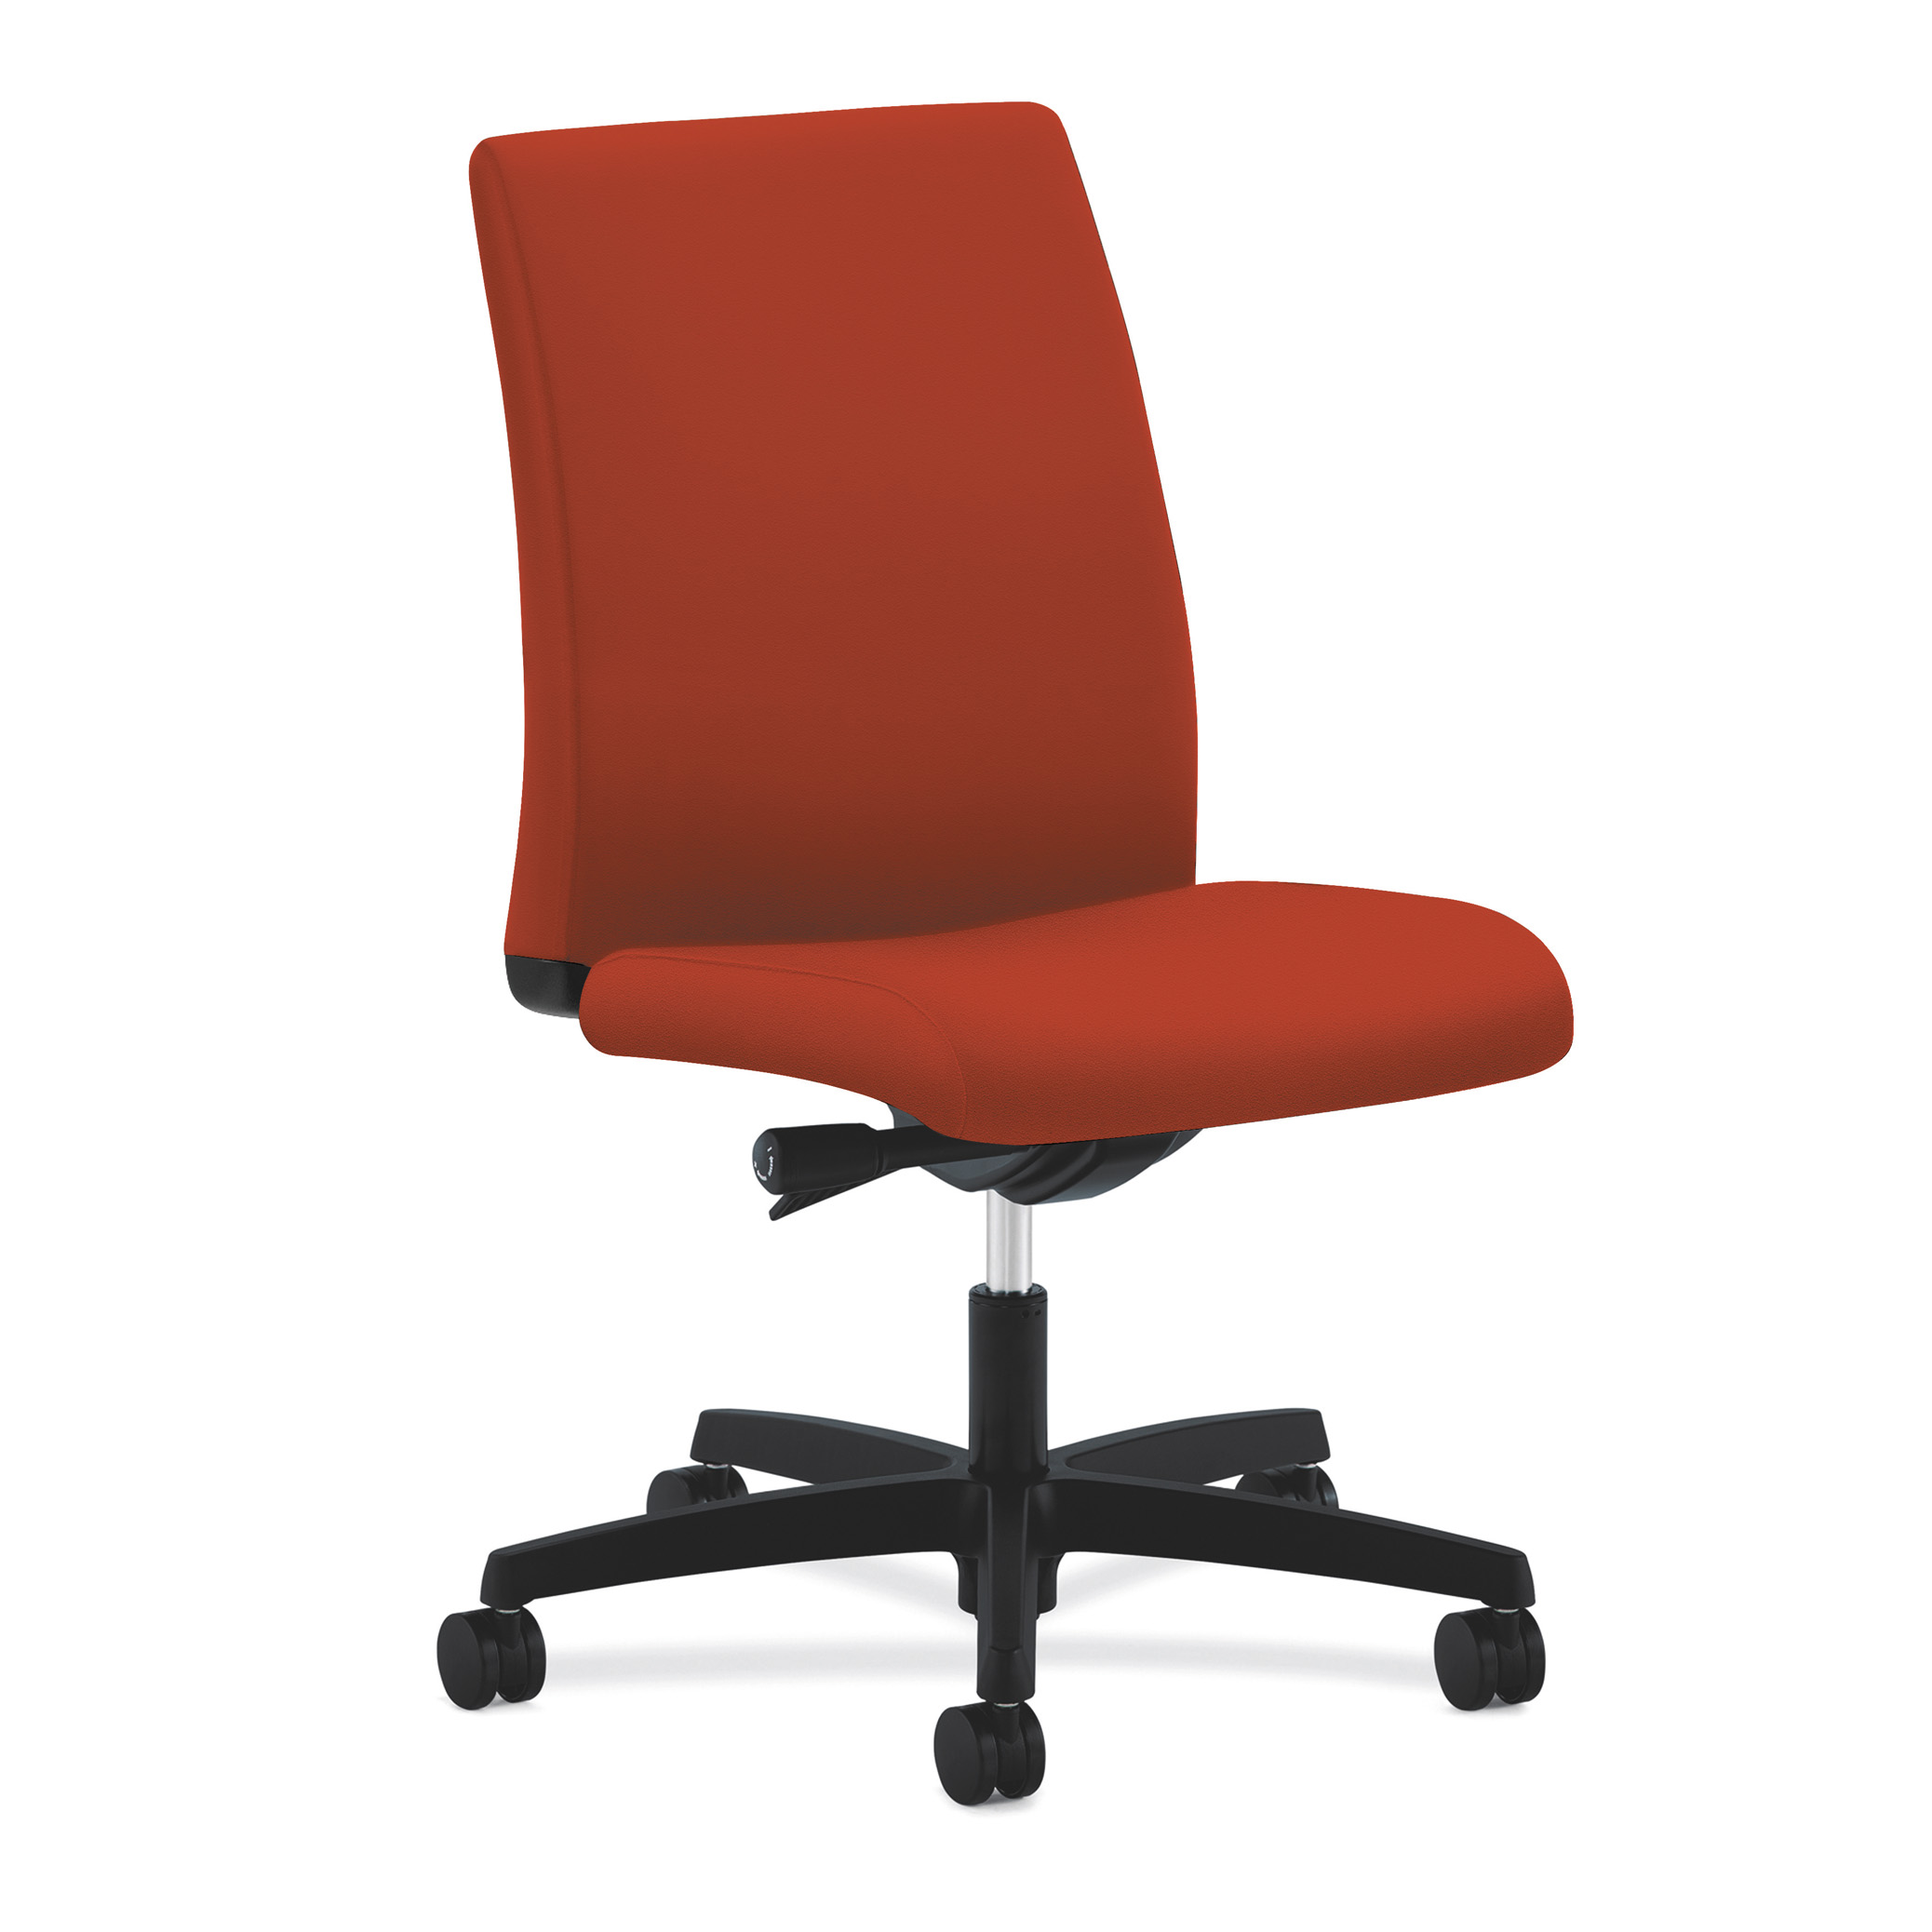 hon ignition 2 0 chair review mesh pool lounge chairs task seating arthur p o 39hara inc